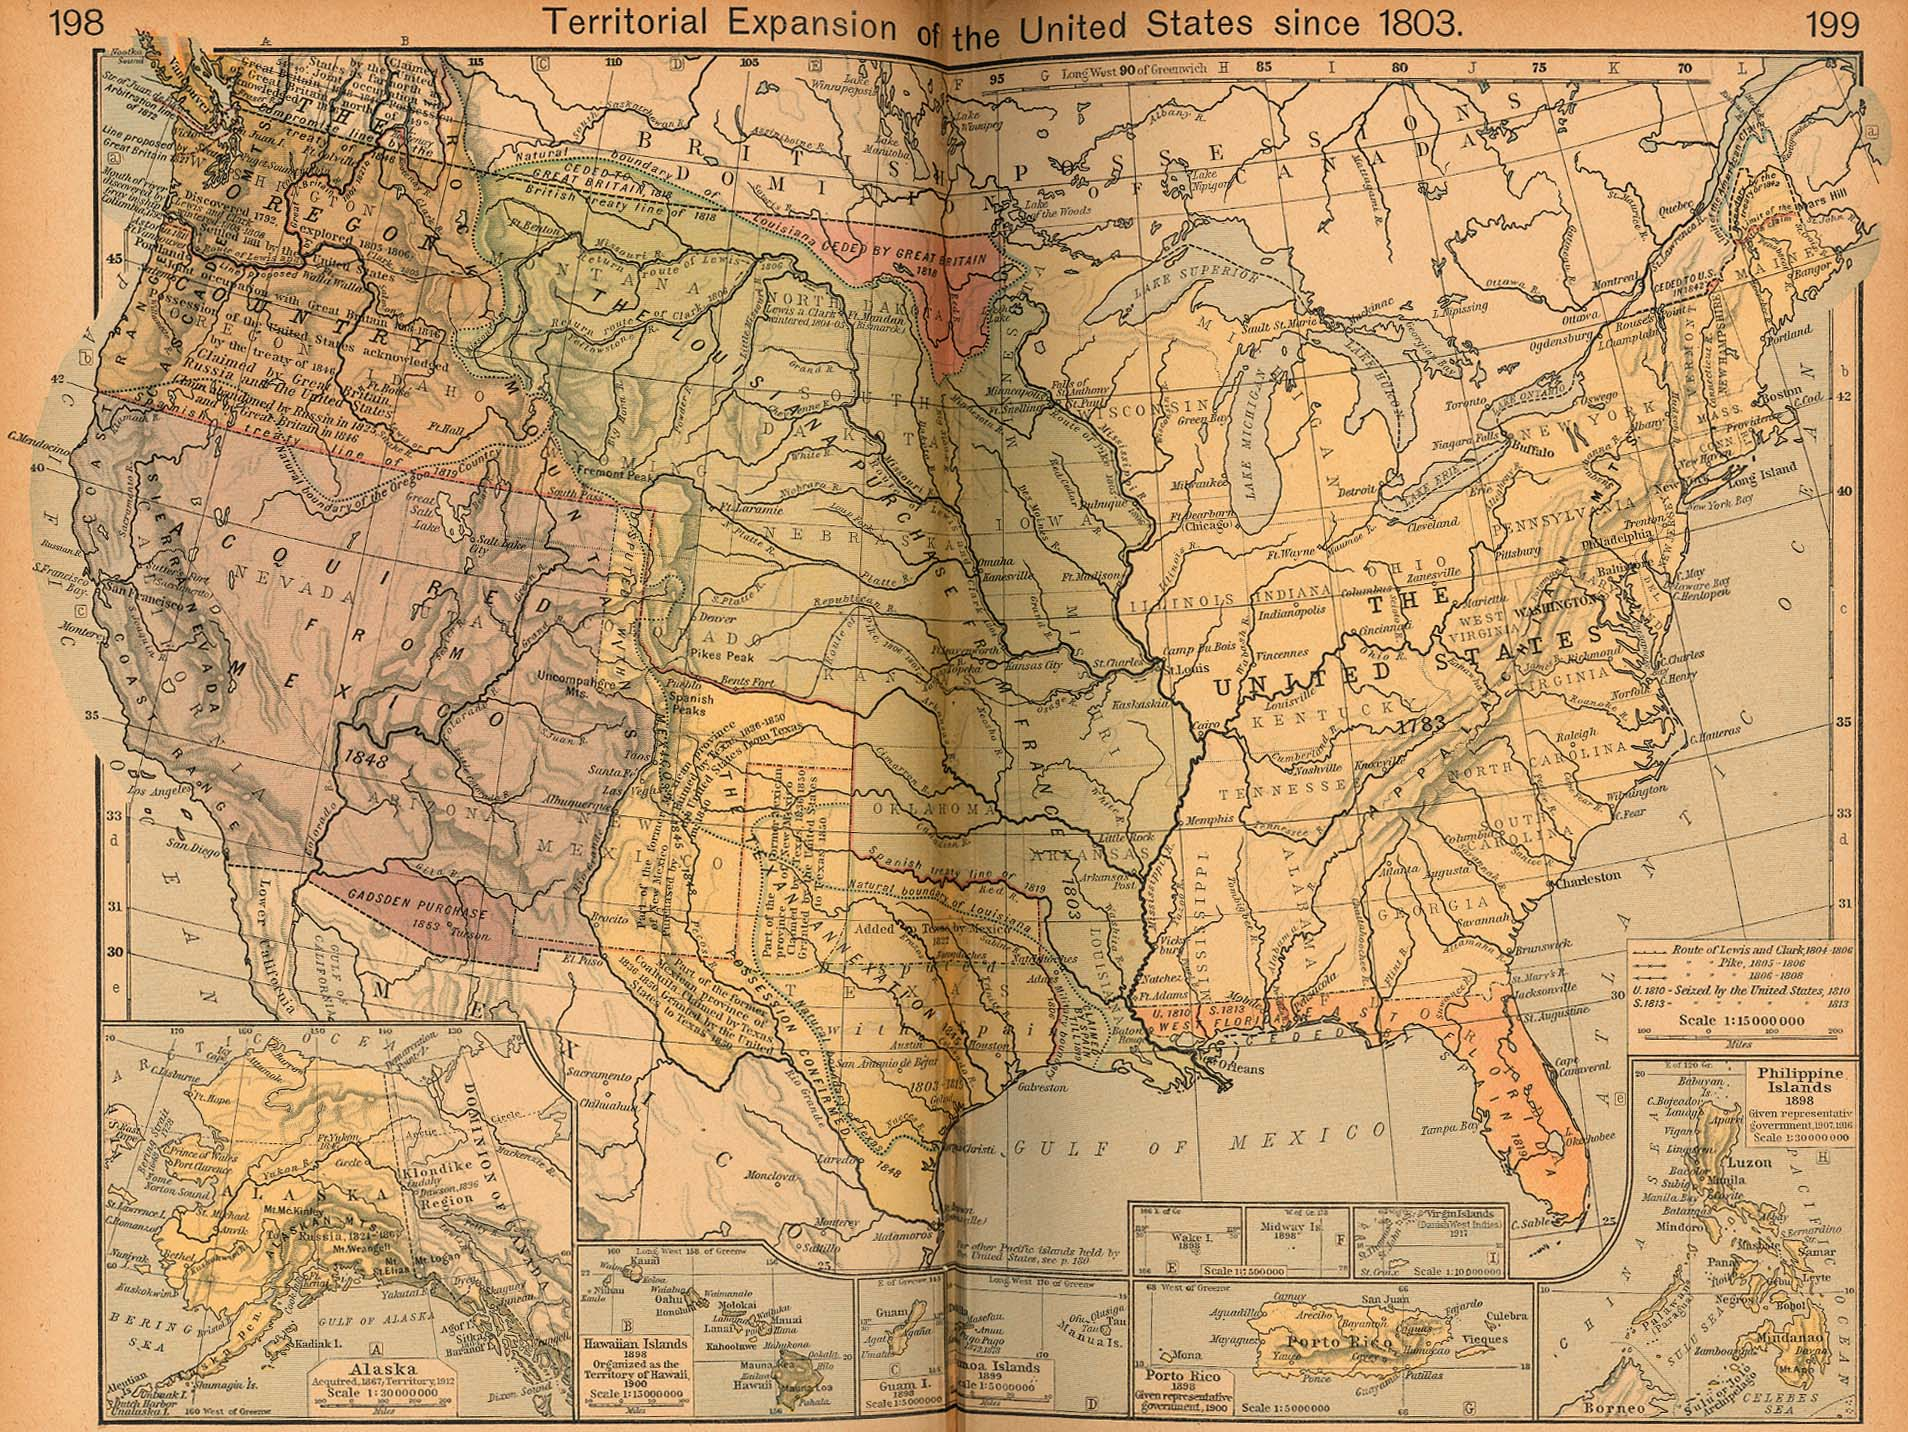 FileTerritorial Expansion of the United States since 1803jpg